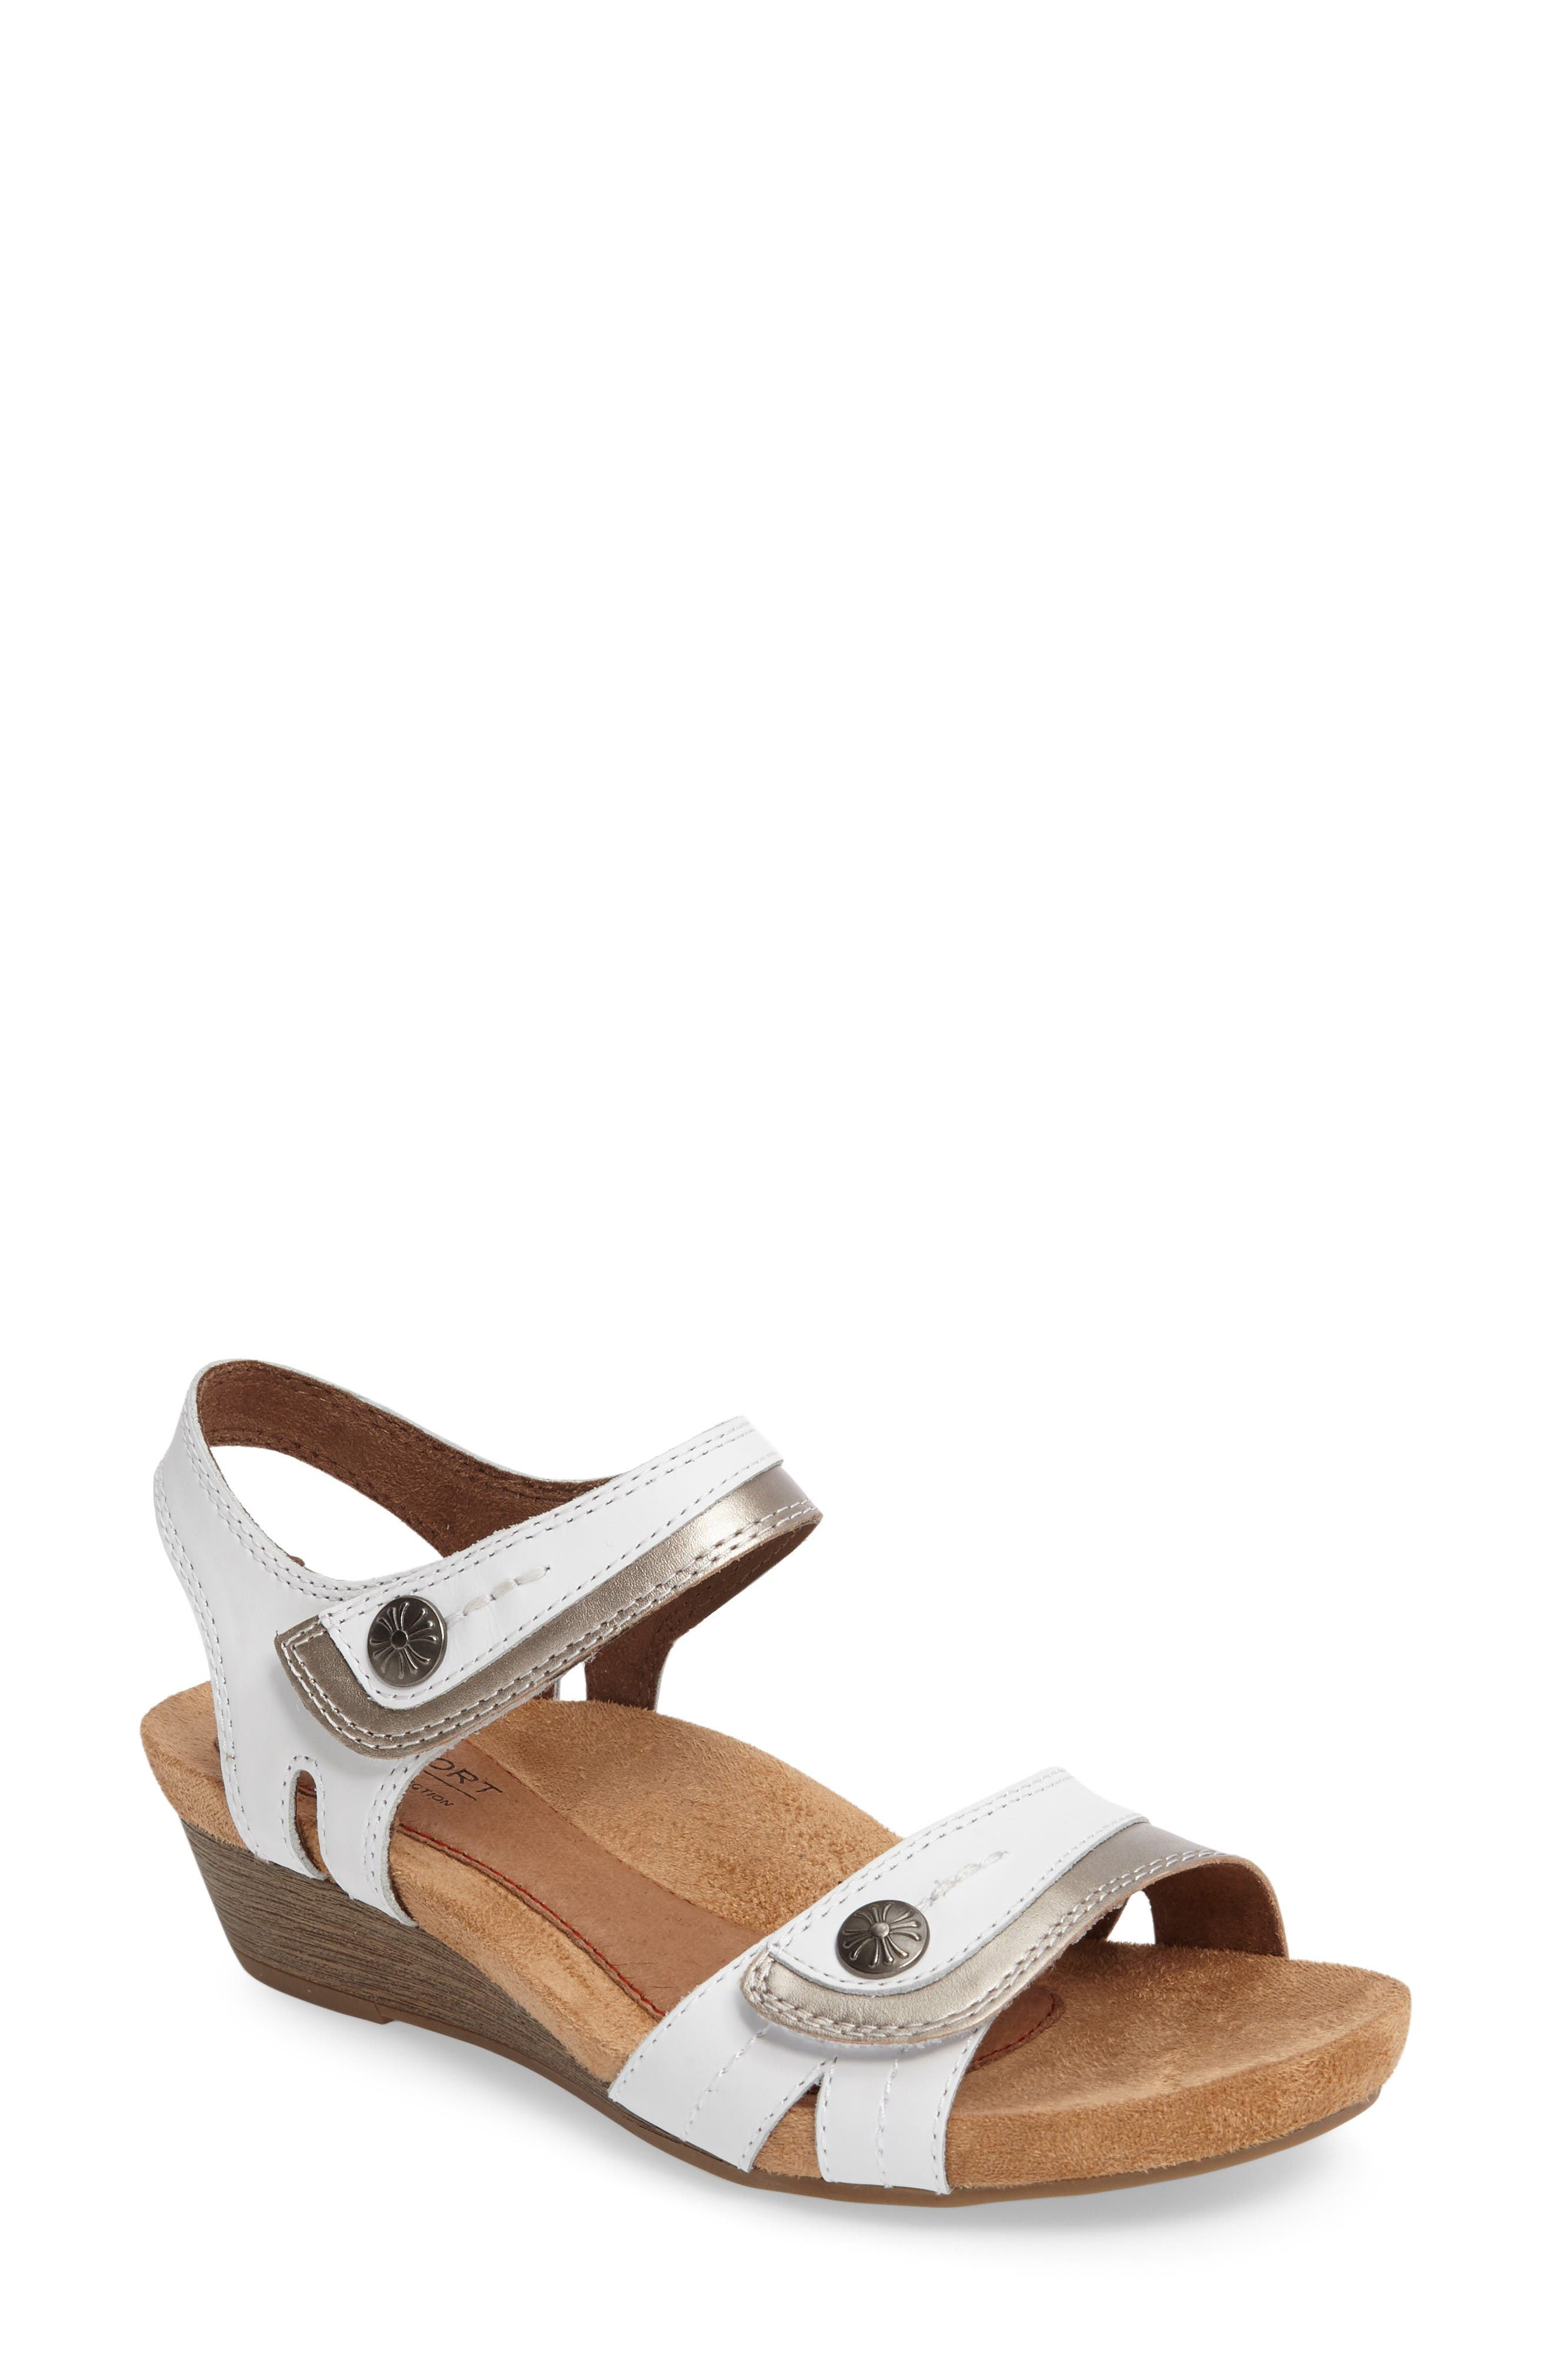 Hollywood Wedge Sandal,                         Main,                         color, White Leather